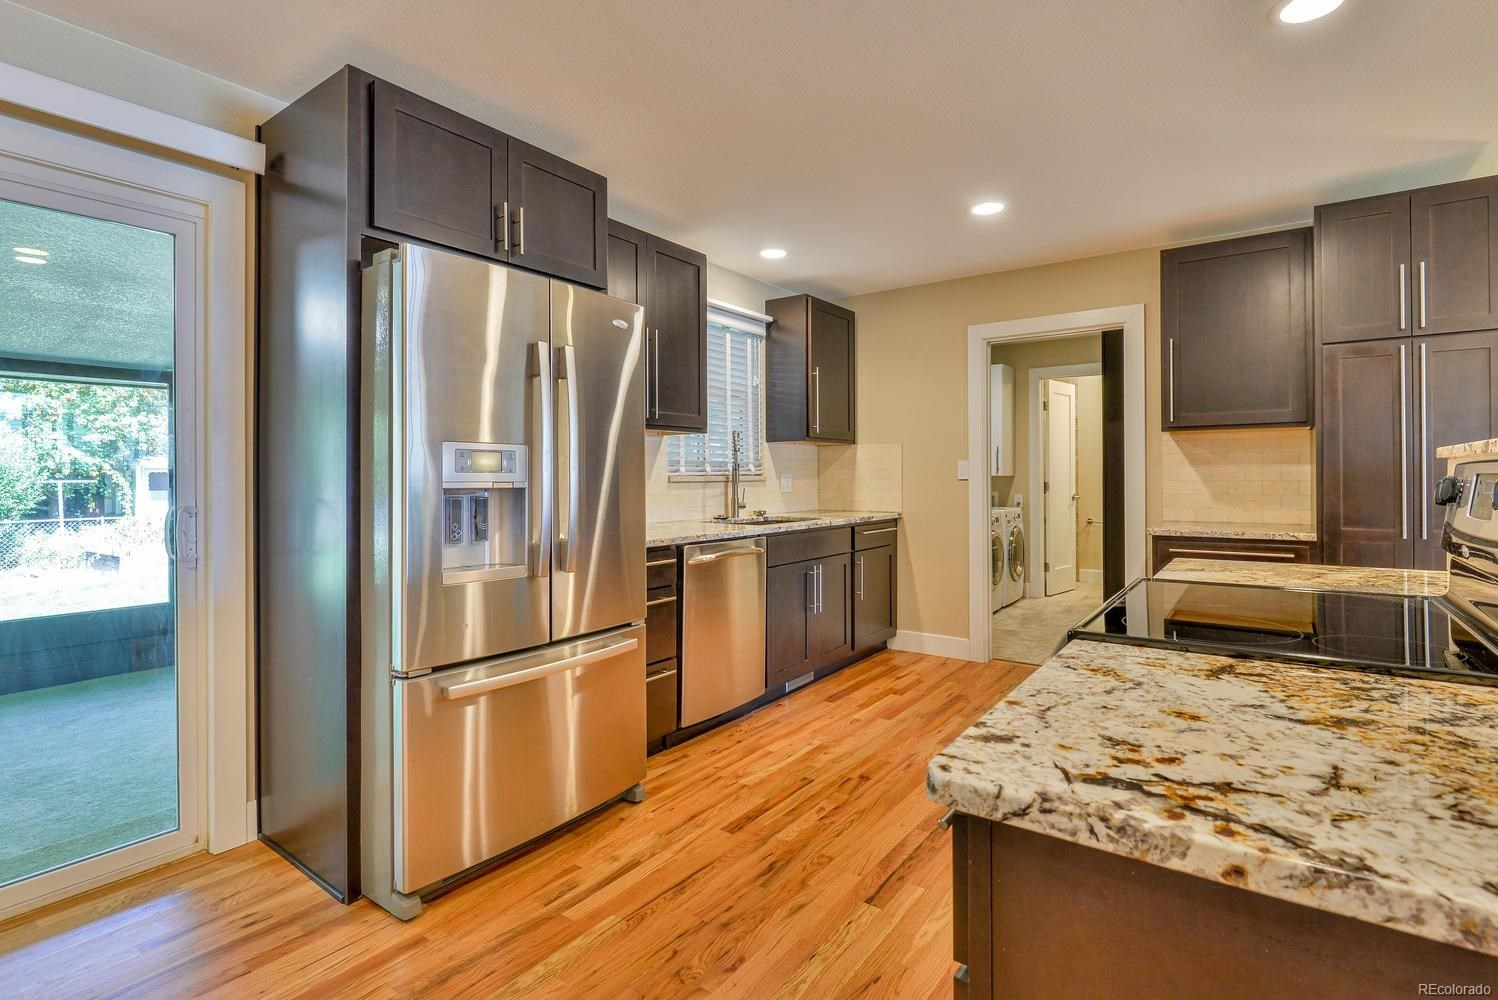 MLS# 1645833 - 9 - 1924 Springfield Drive, Fort Collins, CO 80521